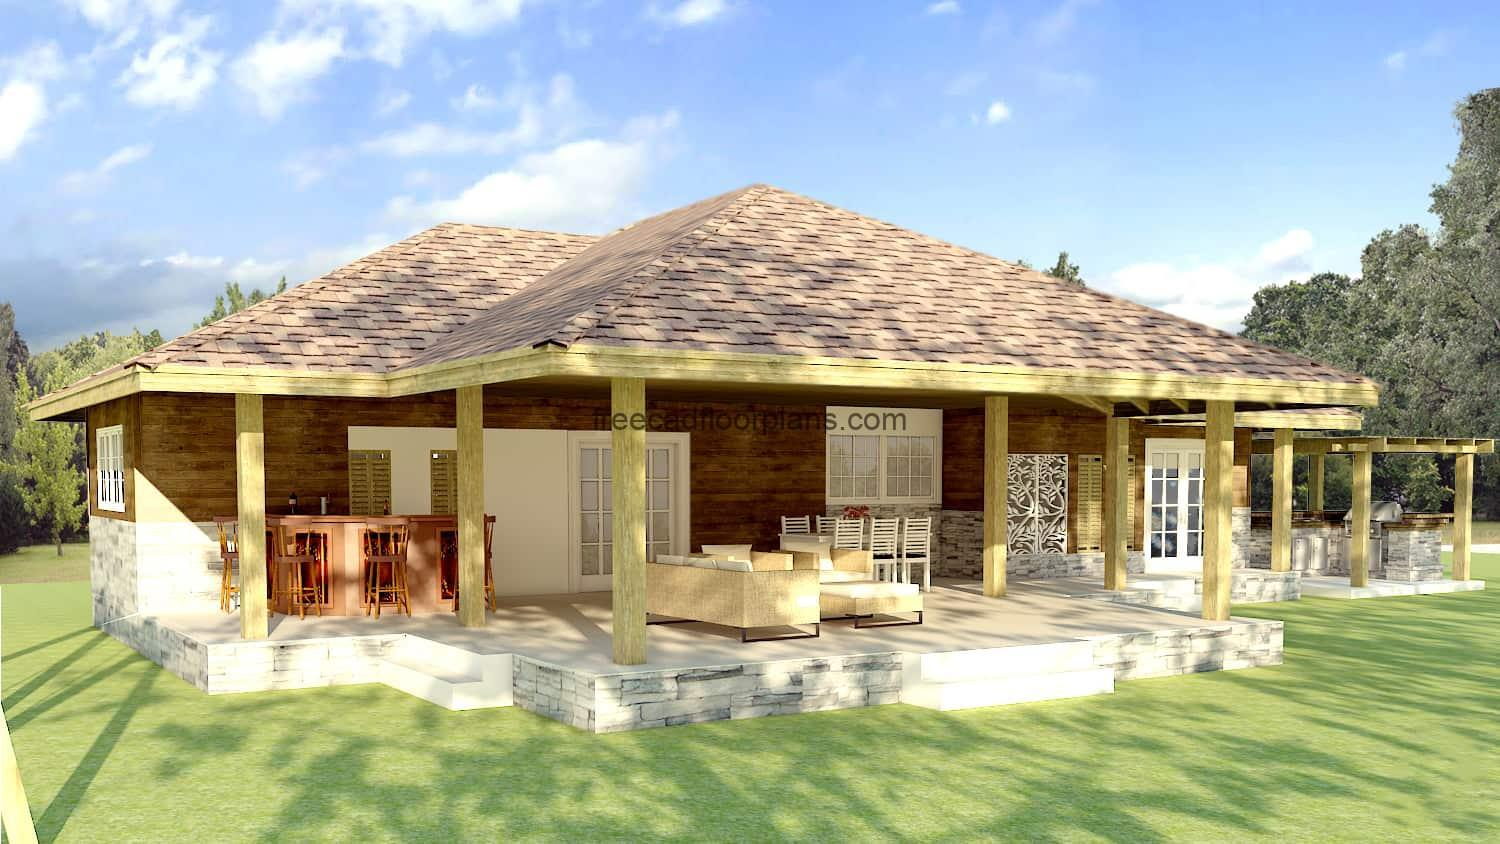 Country house architectural project